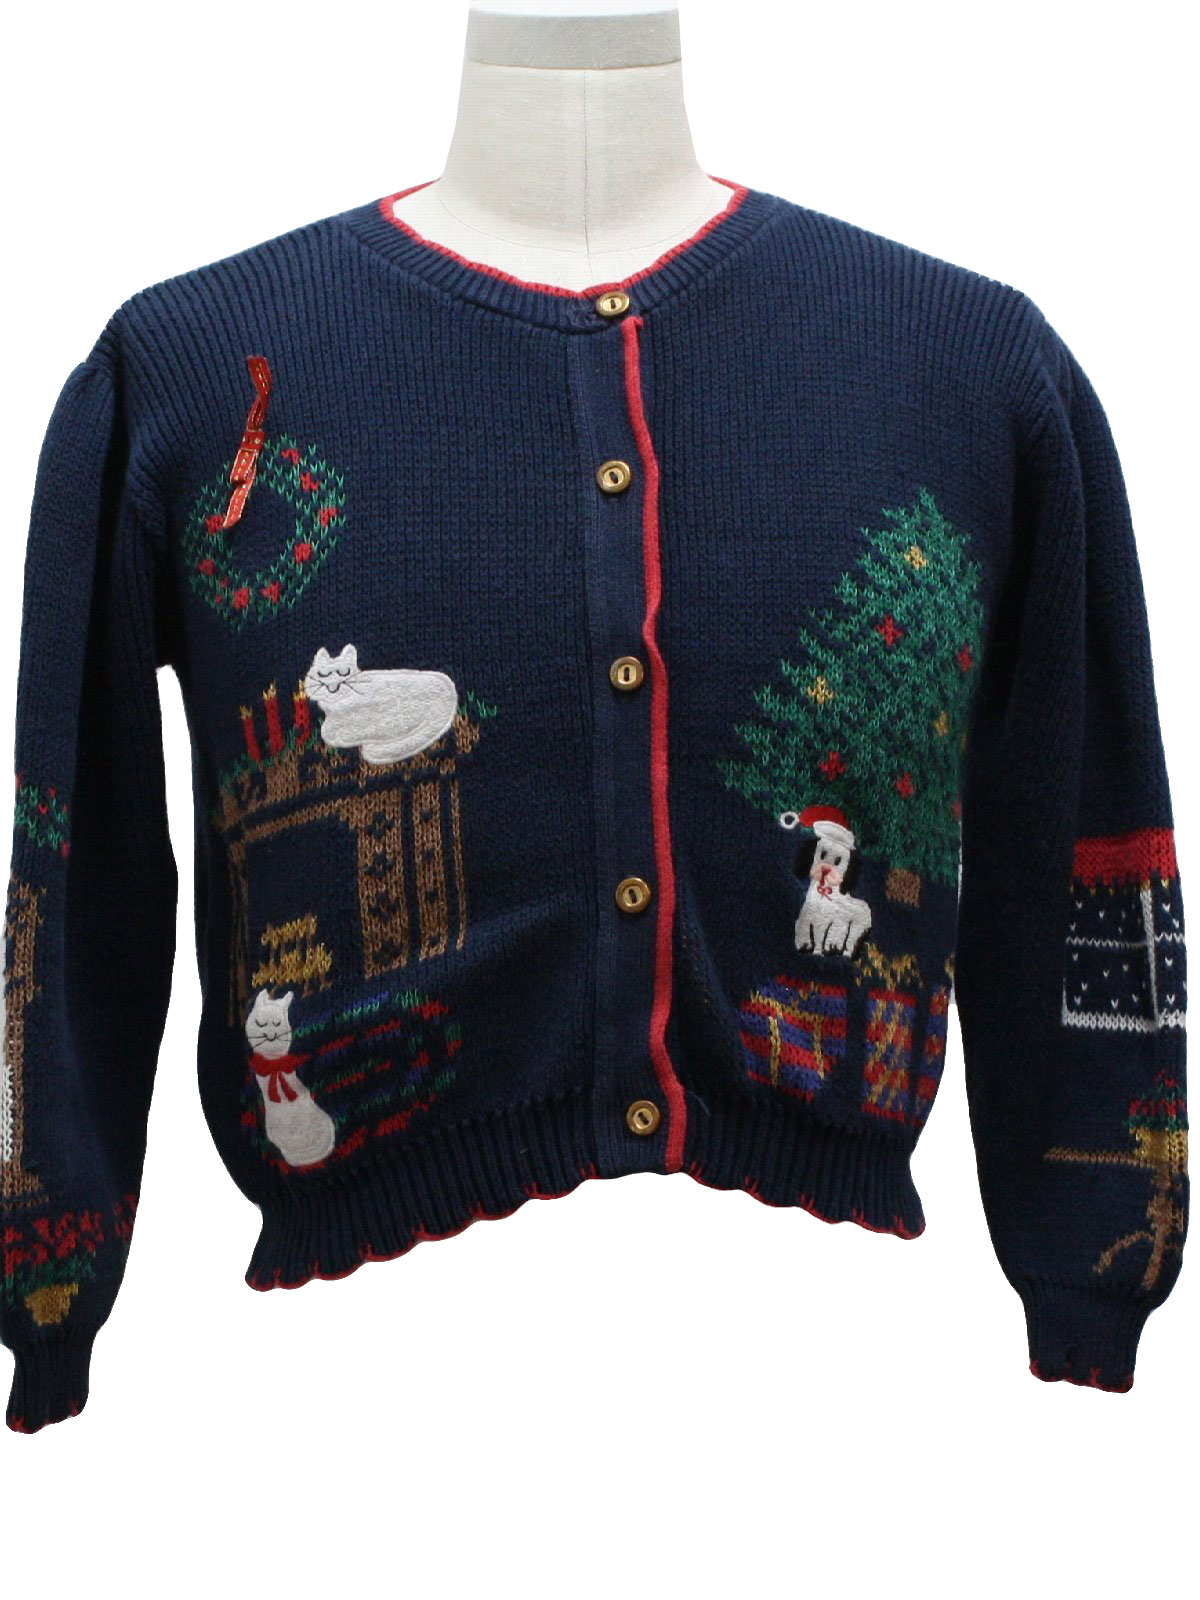 80s Womens Vintage Ugly Christmas Sweater 80s Authentic Vintage Missing Label Womens Childs